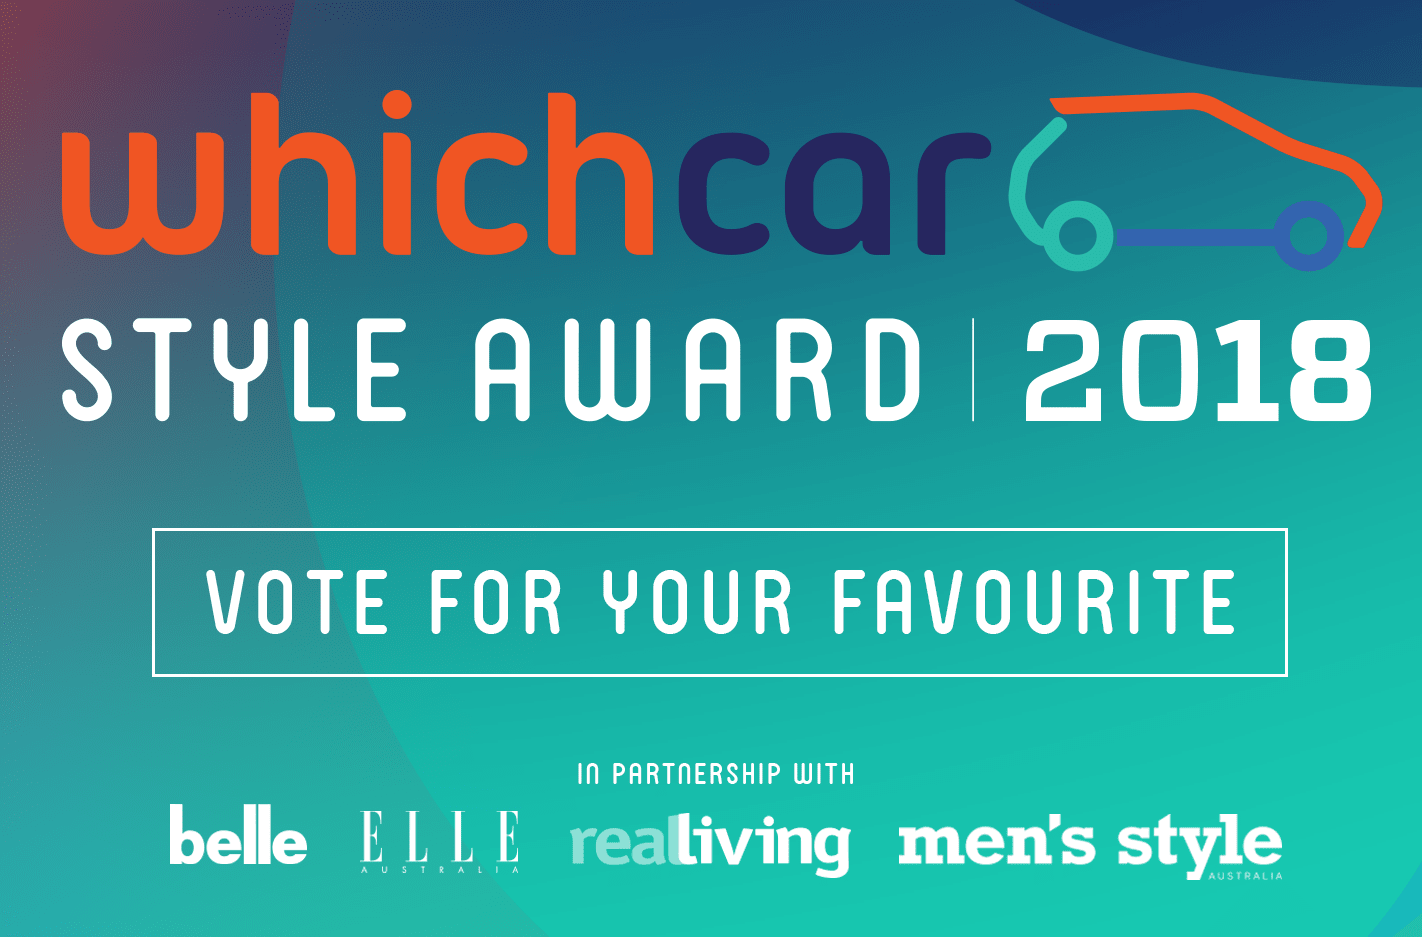 2018 Whichcar Style Award